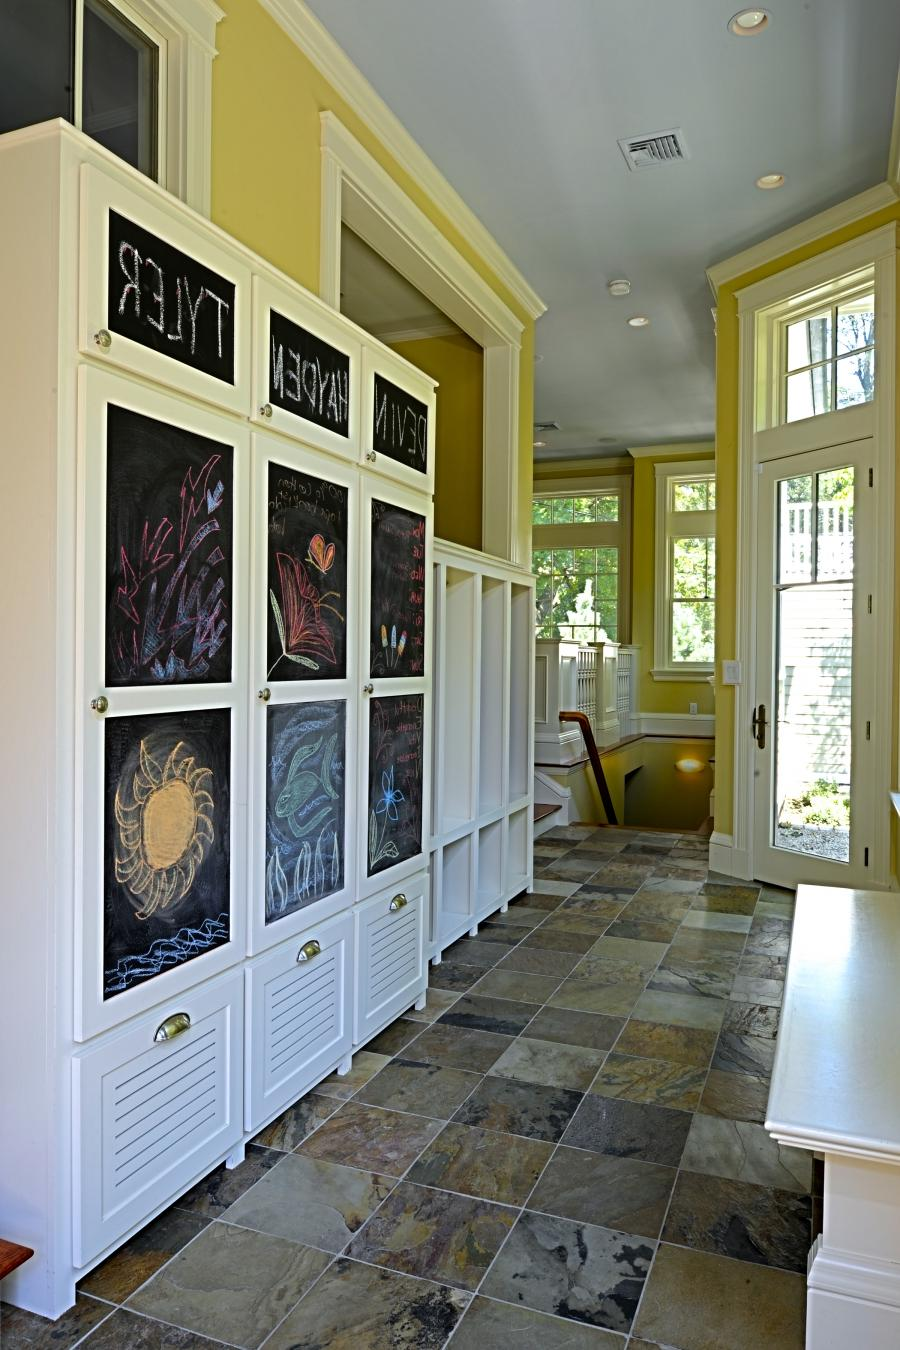 Fairfax Mudroom, Fairfax Mud room